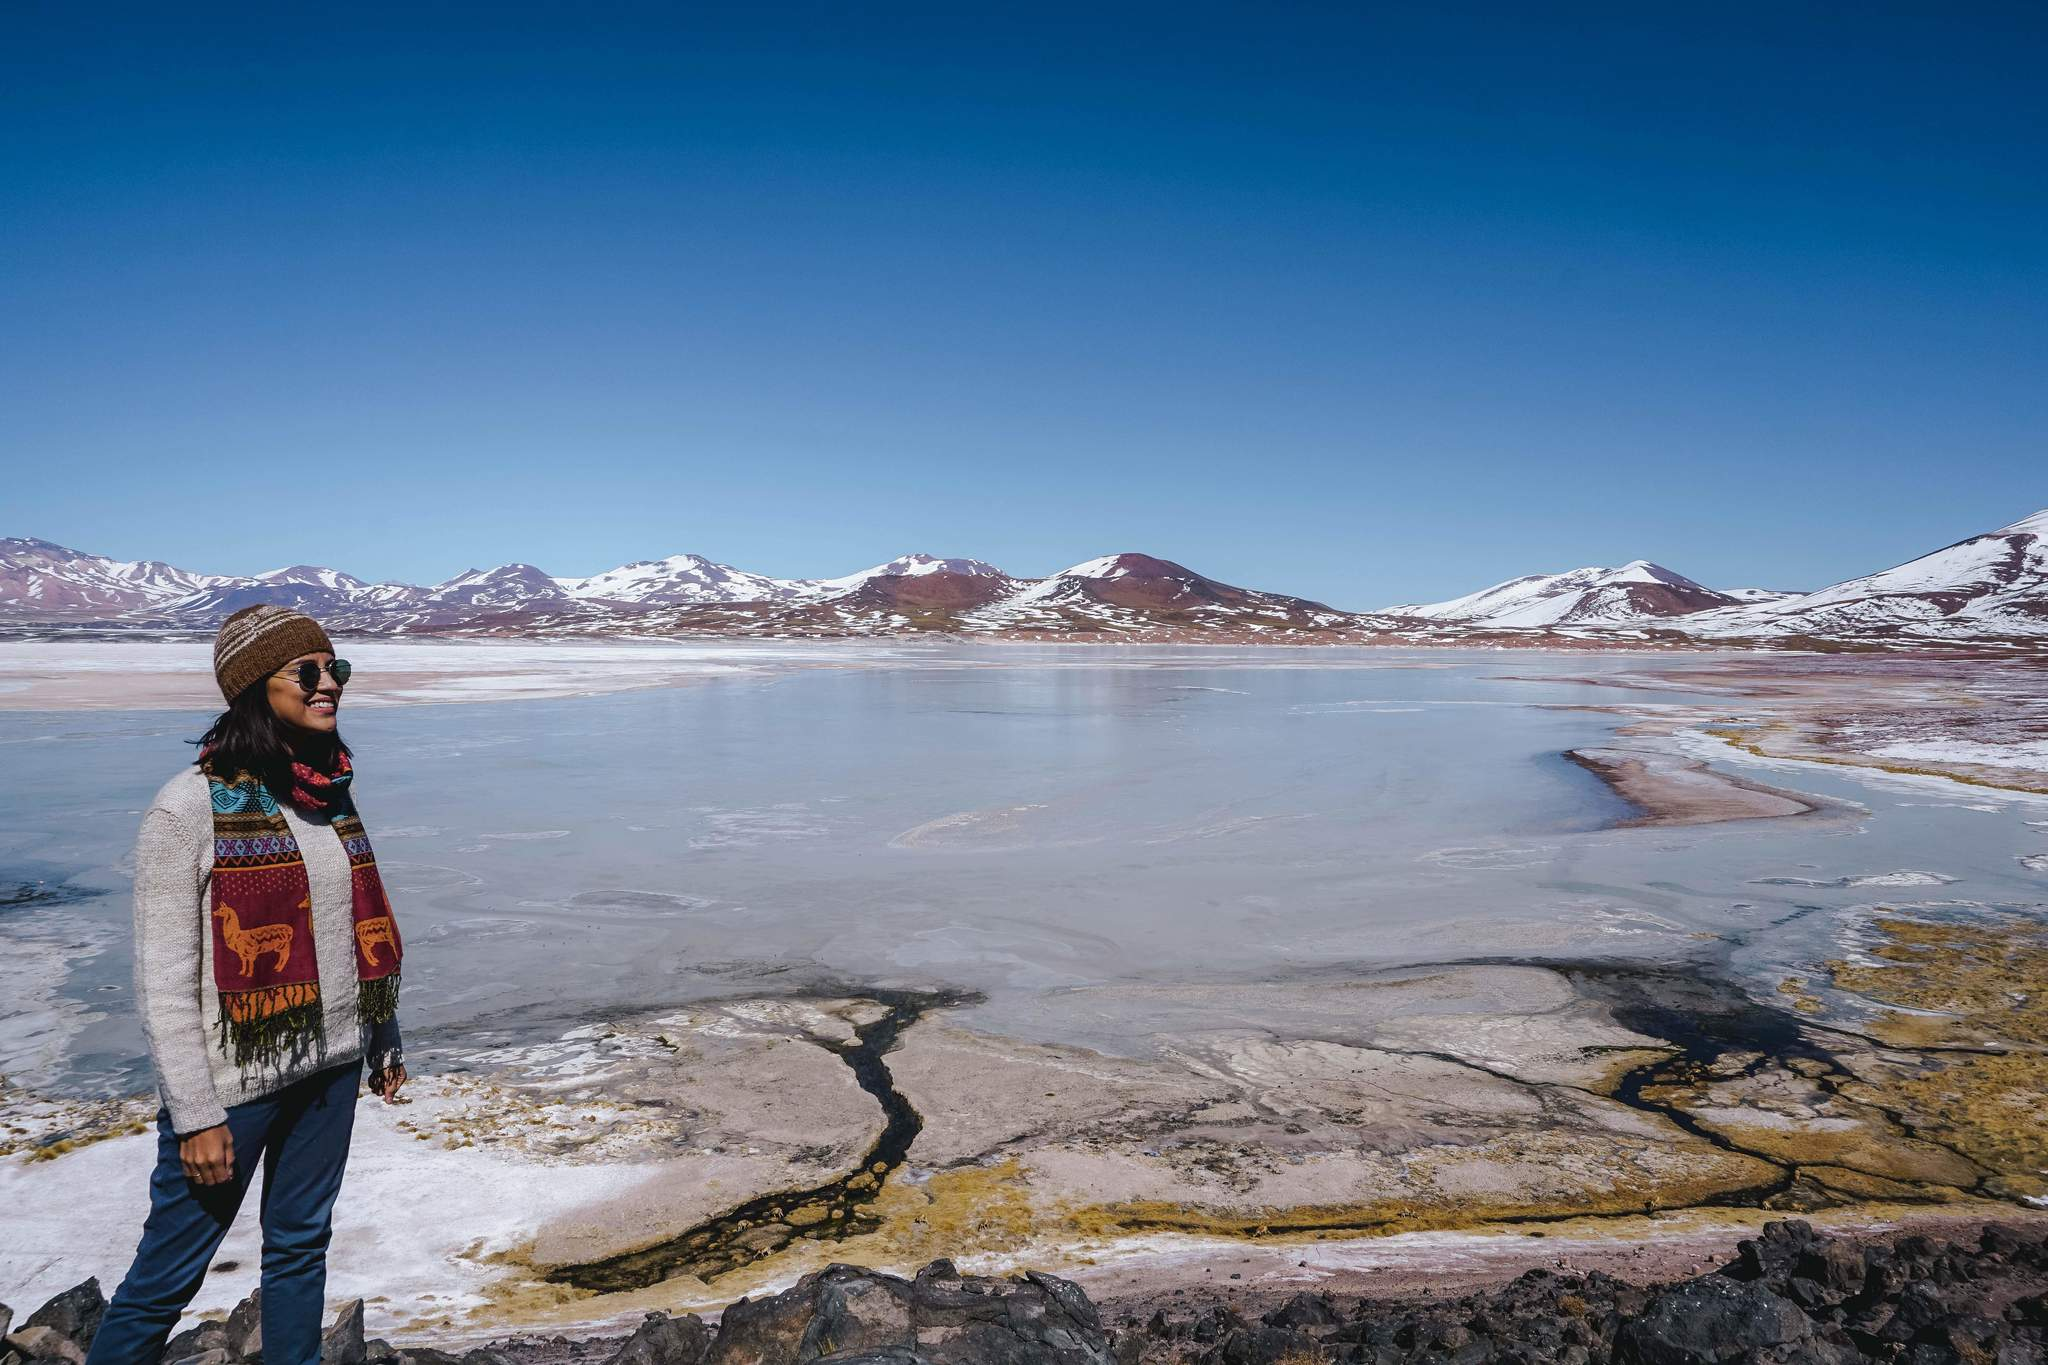 Self-driving guide-to-Atacama-Desert-itinerary-must-see-spots-9